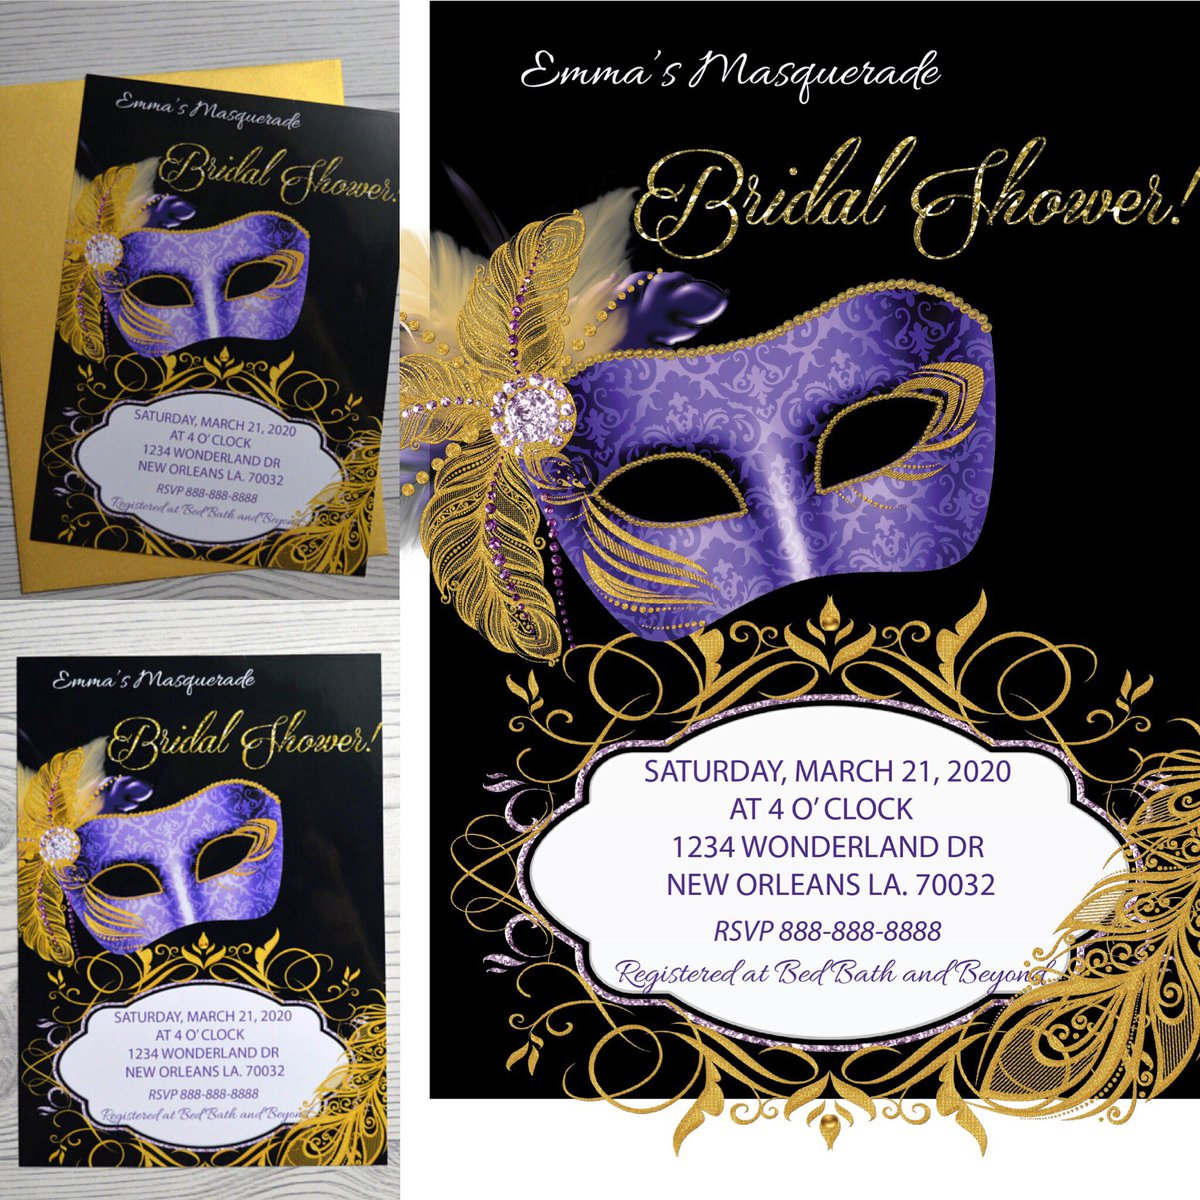 invitation bachelorette party bridalshower bridesmaids bride bacheloretteparty mardigras mardigras2018 wedding etsy etsysale etsylovers